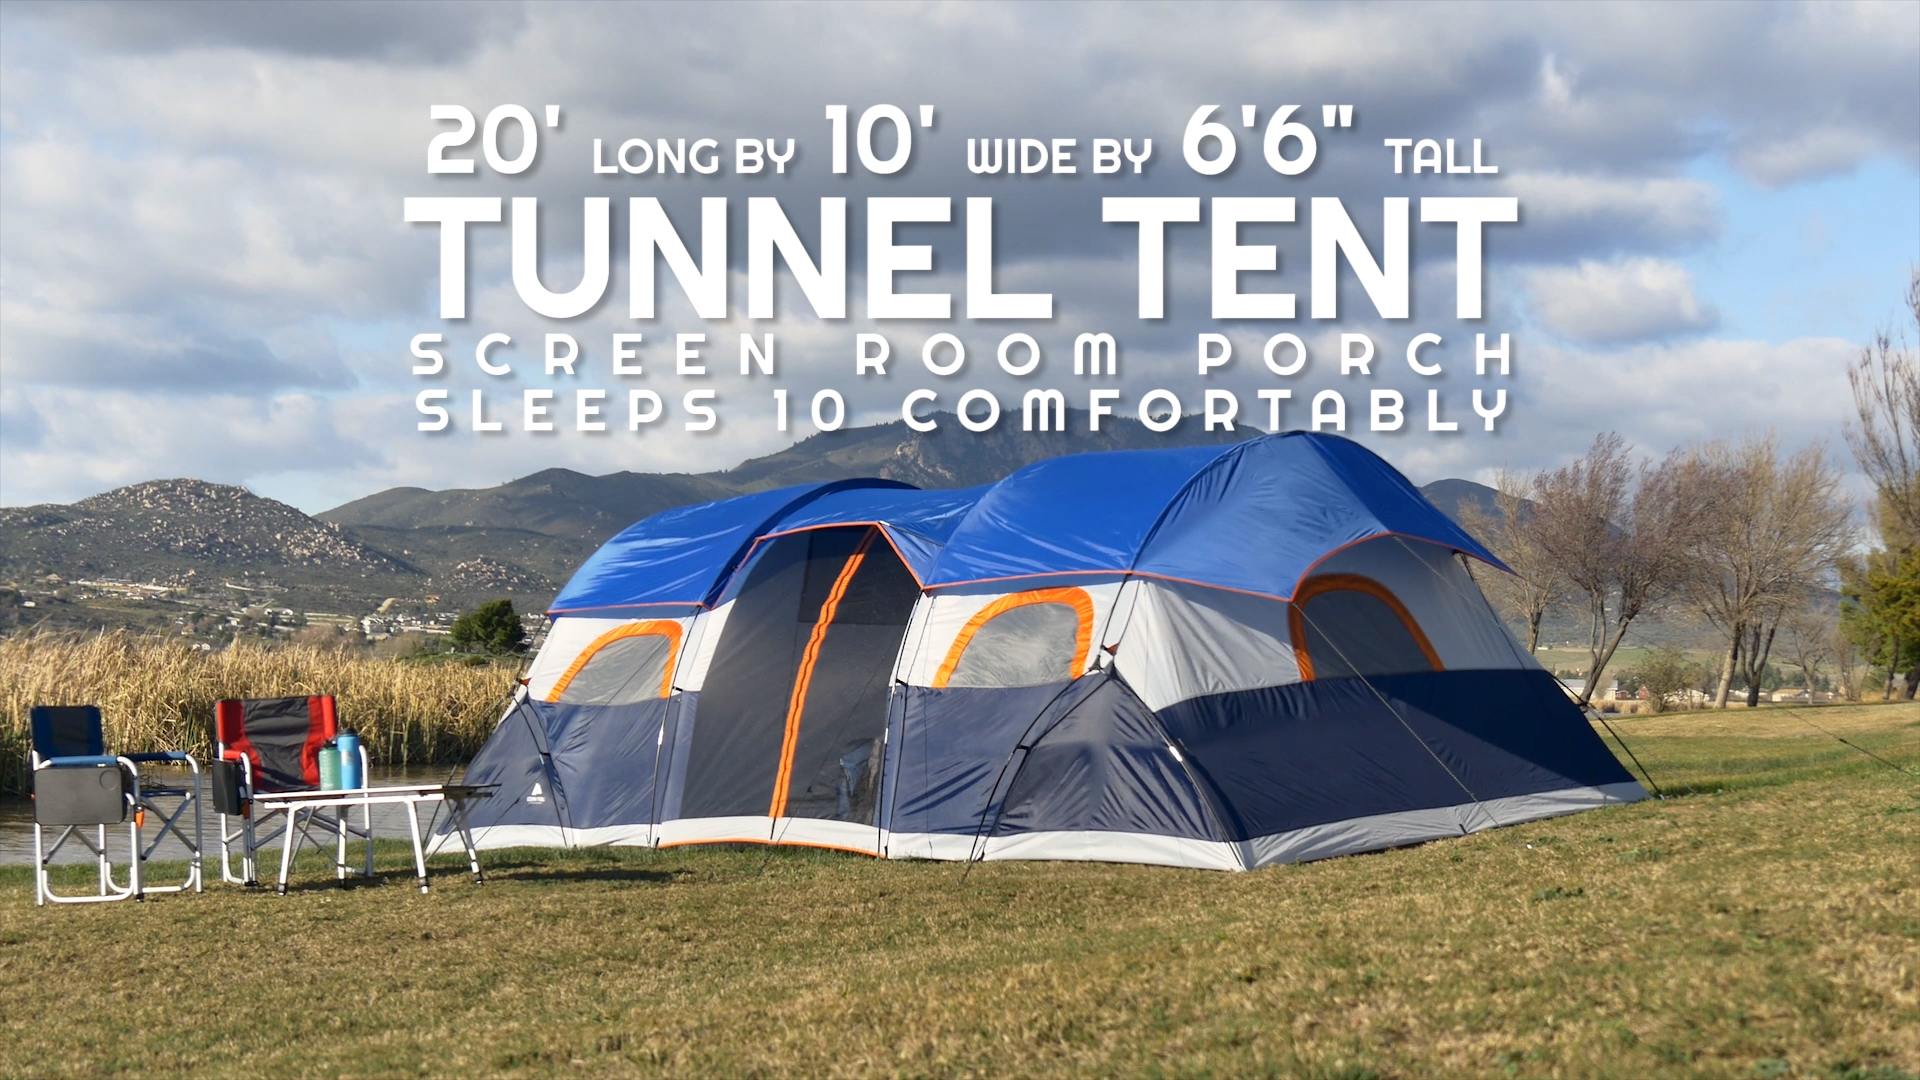 See More Hot 100 Tents